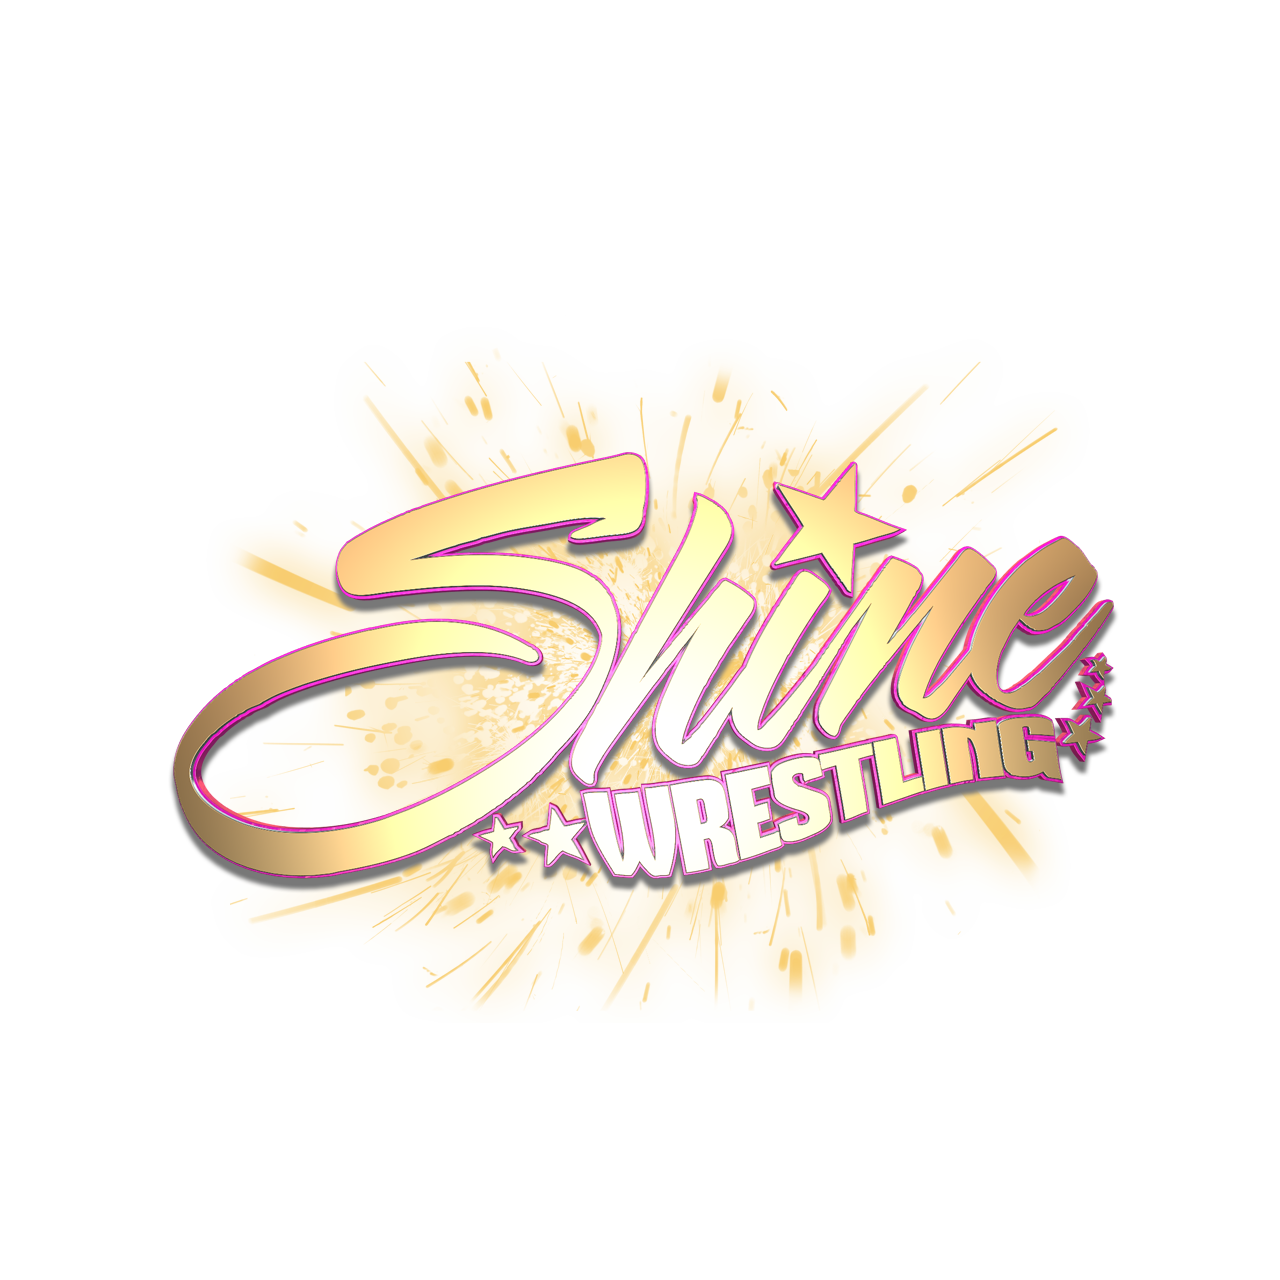 SHINE Wrestling Returns on May 12th with SHINE 42!